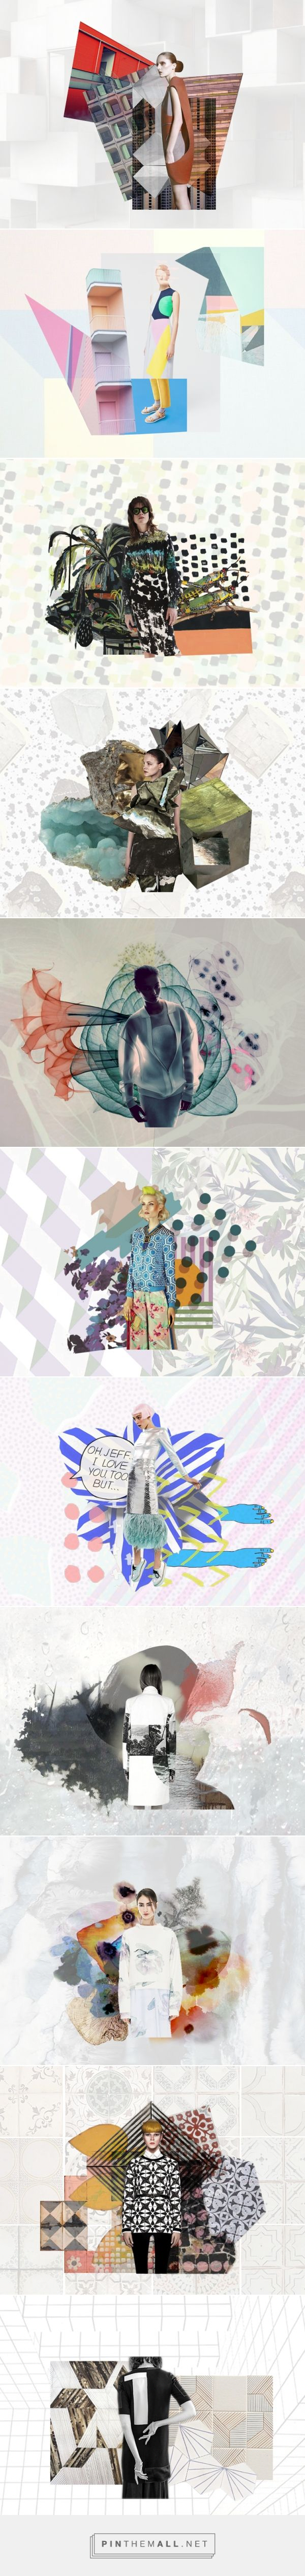 Moodboard collage / Front Row Society on Behance... - a grouped images picture - Pin Them All